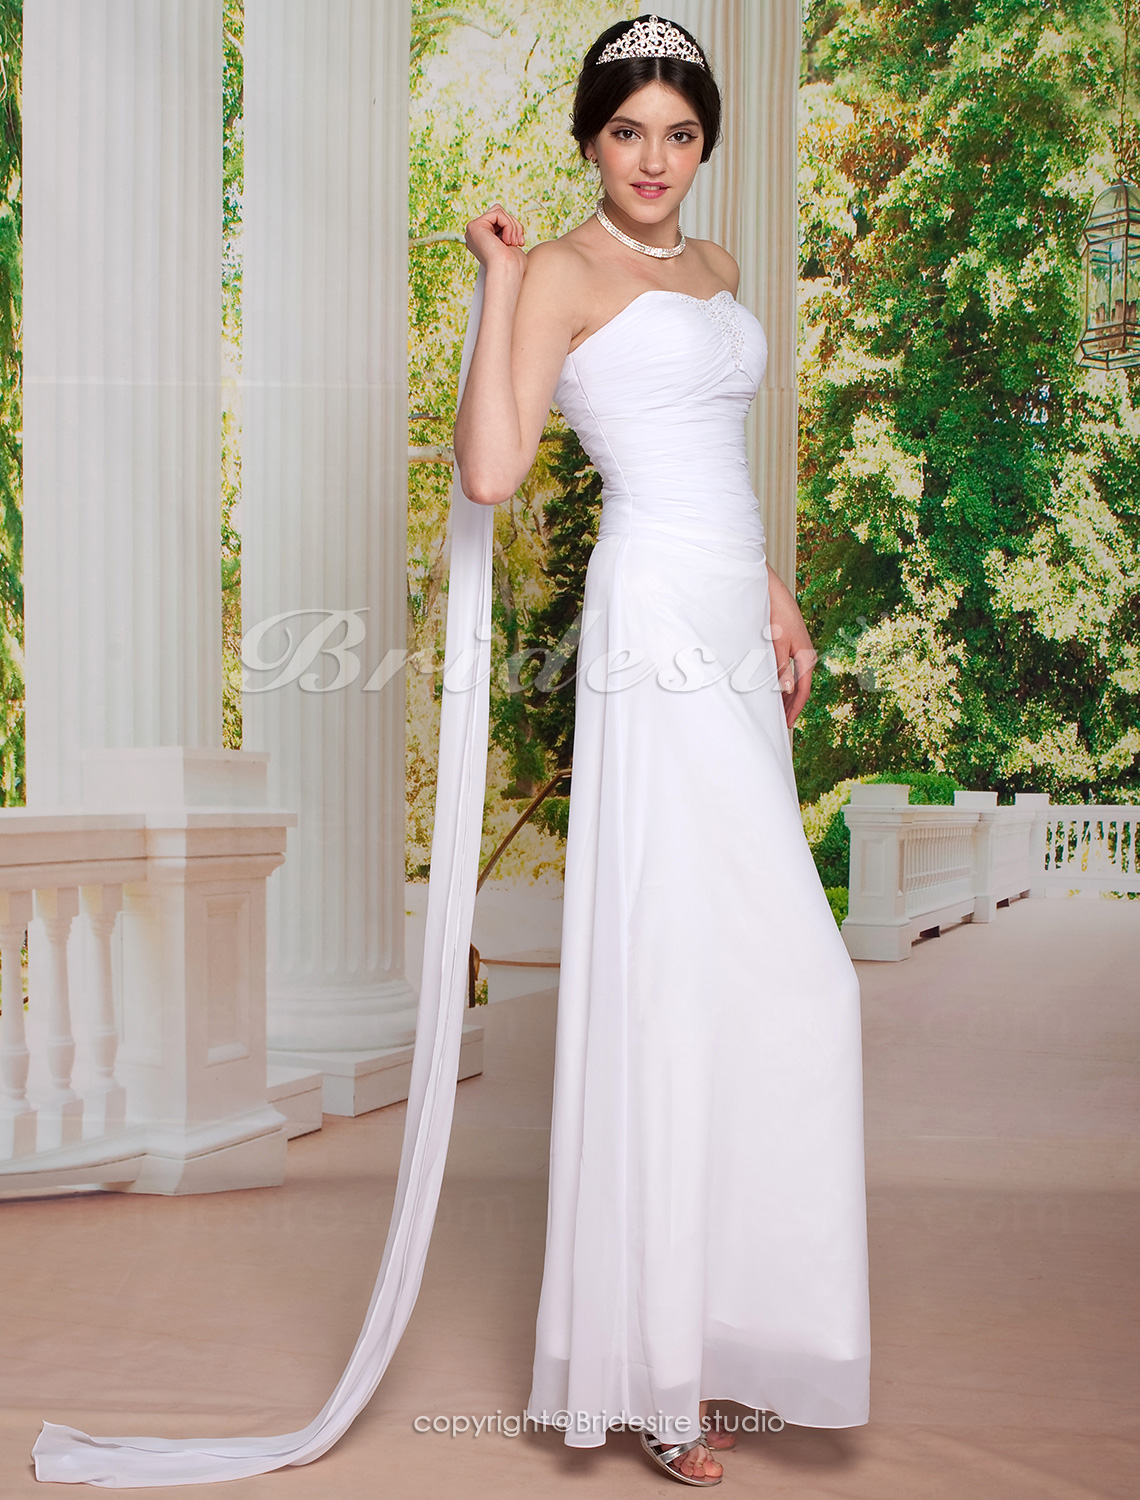 Sheath/ Column Chiffon Ankle-length Sweetheart Wedding Dress With A Wrap